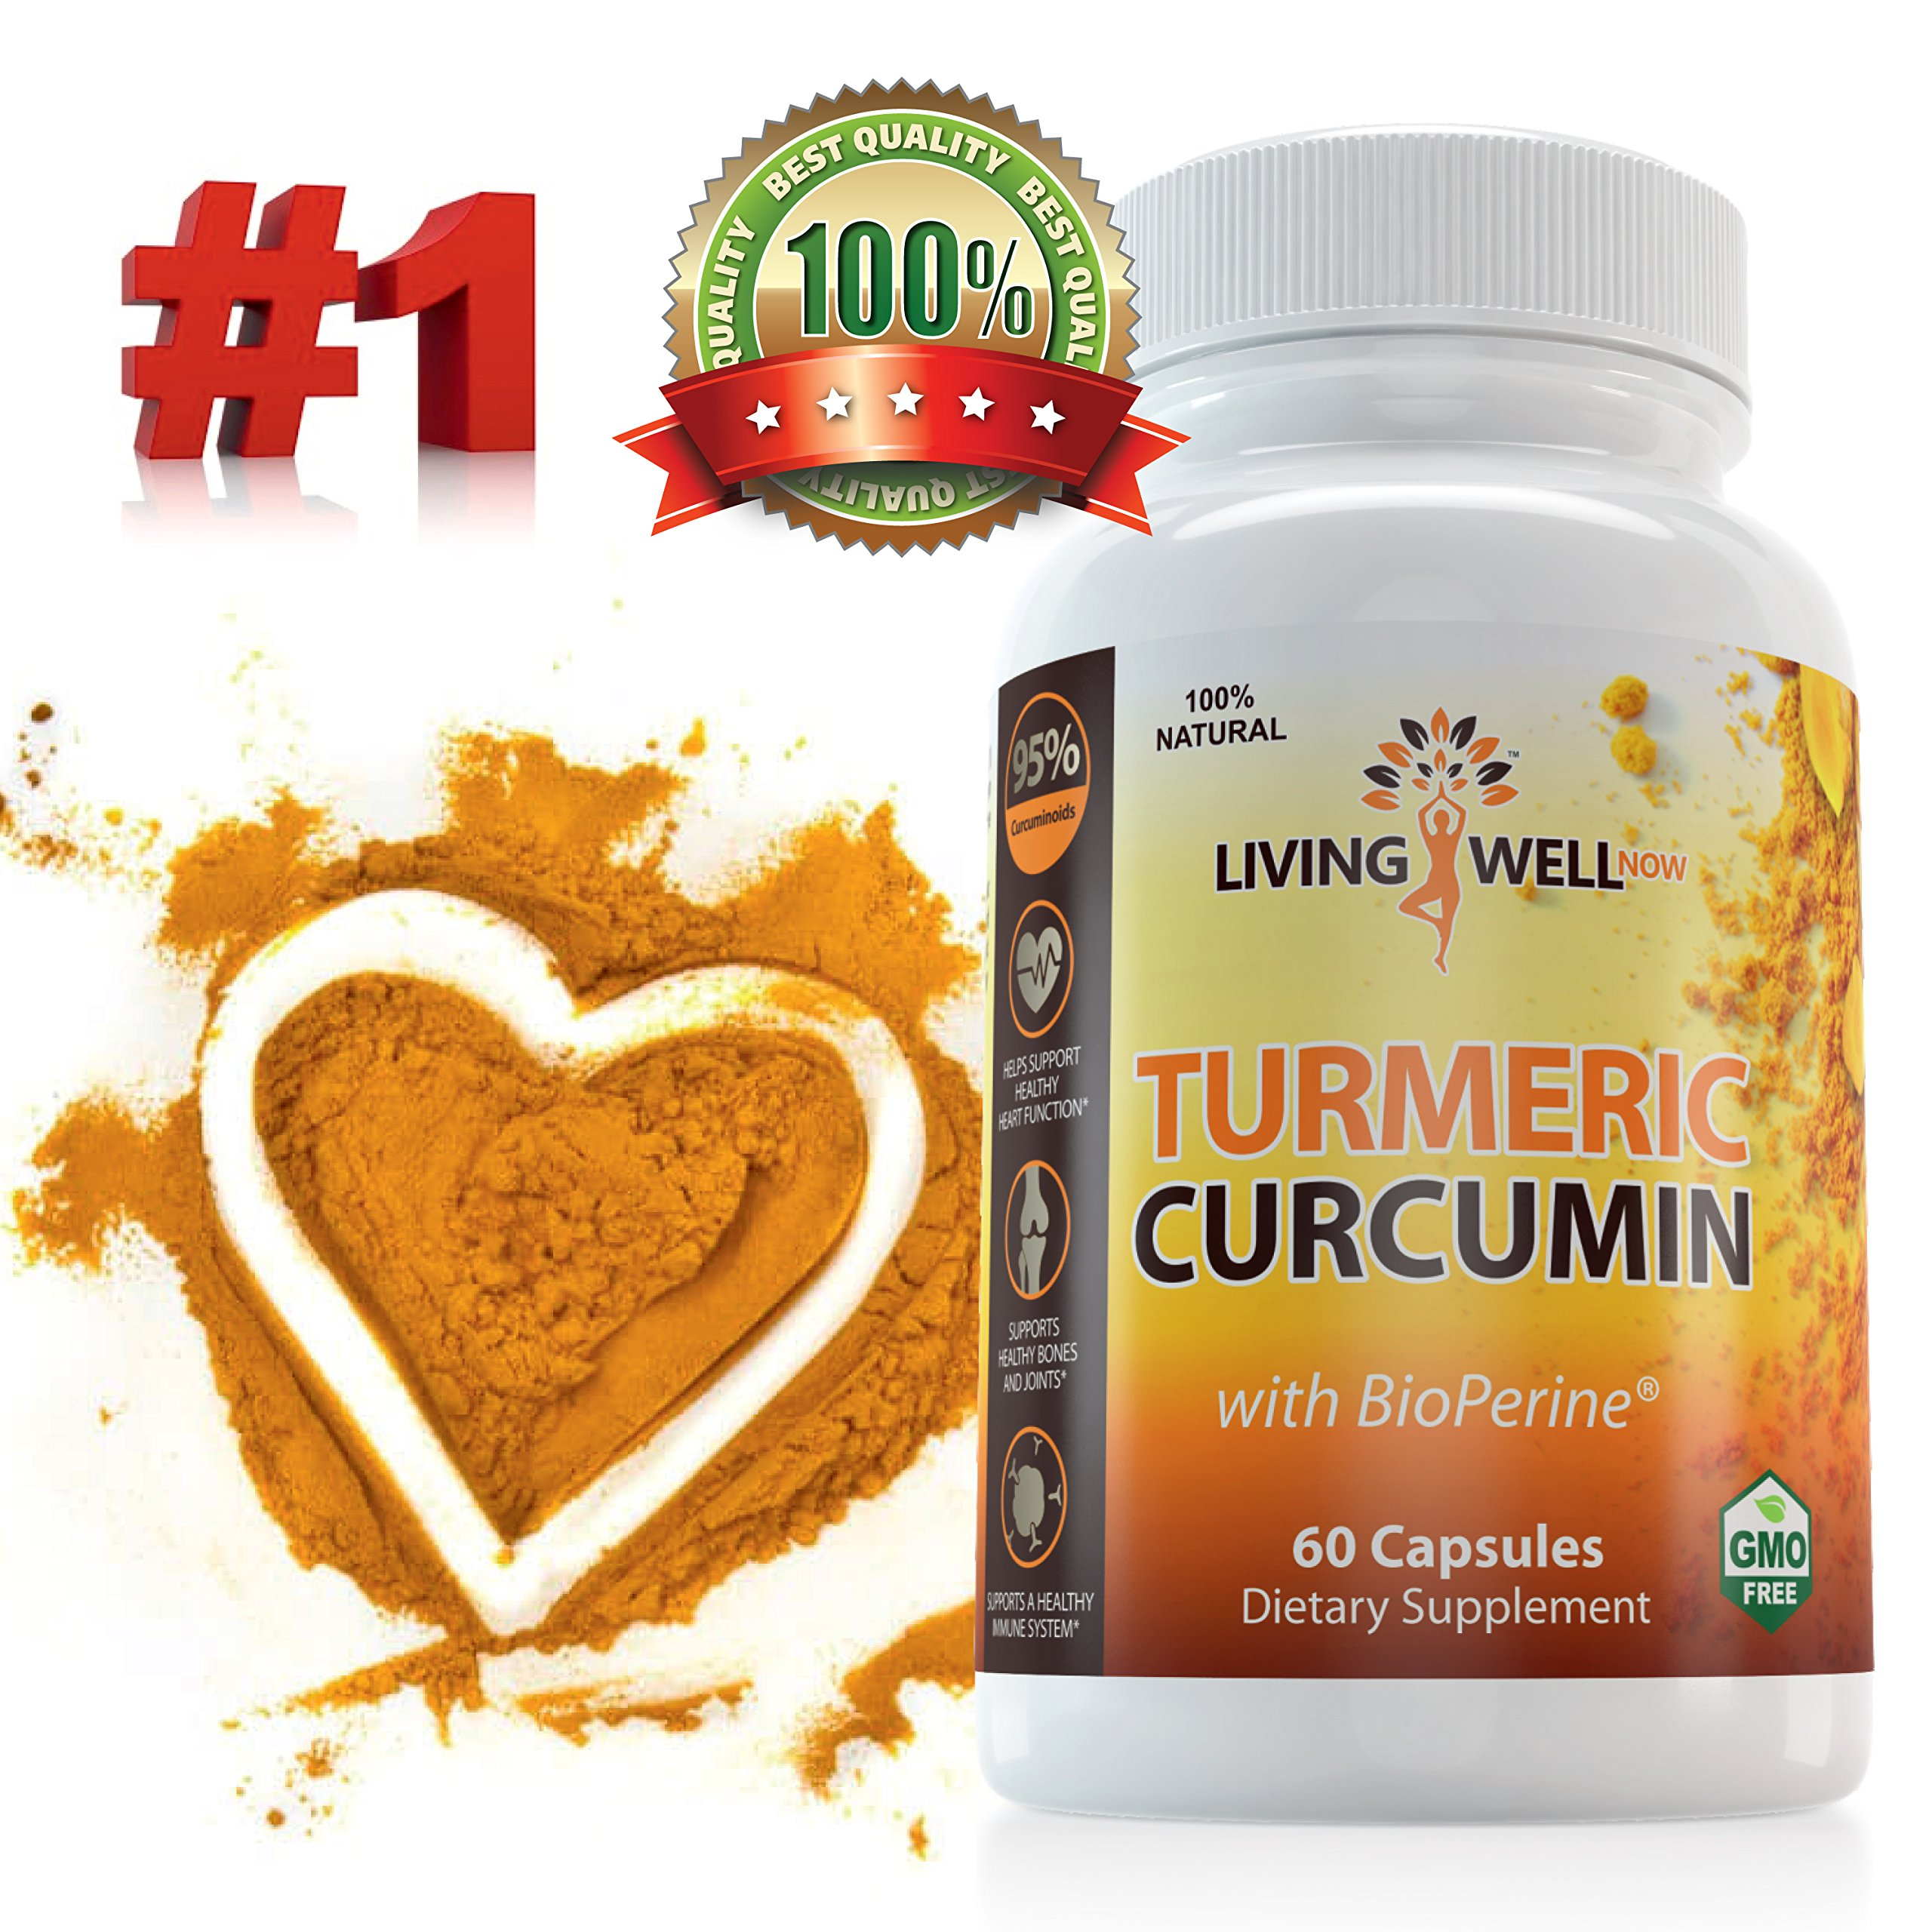 Turmeric Curcumin with BioPerine Supplement. Turmeric Standardized 95 Curcuminoids for Optimal Absorption. Anti Inflammatory Supplement and Natural Anti Aging & Joint Support. Turmeric Capsules